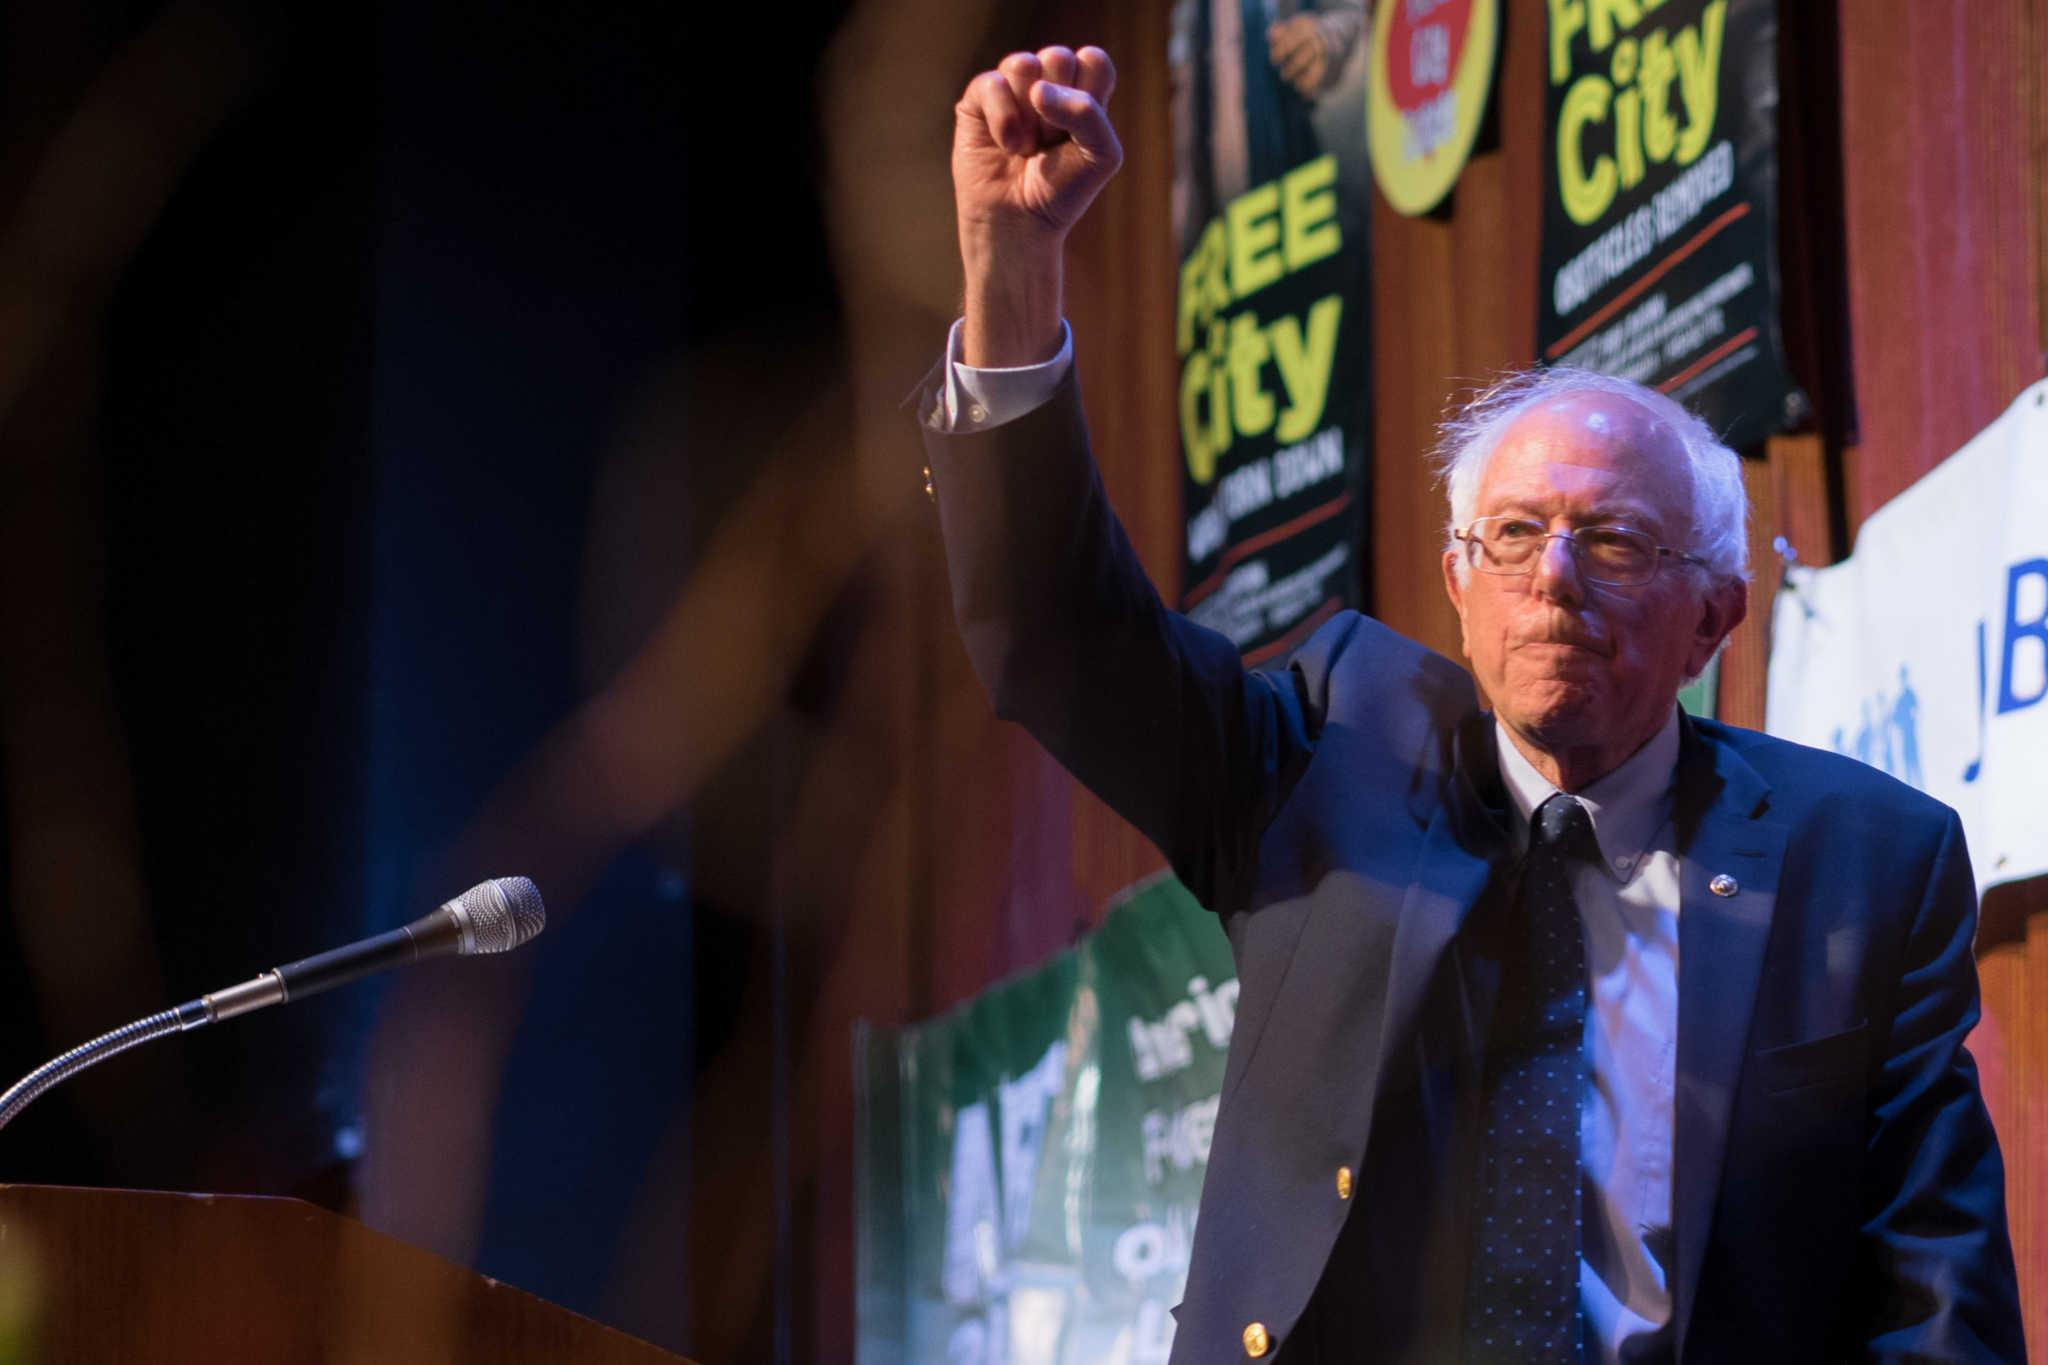 Bernie Sanders announces plan for a tuition-free SF State